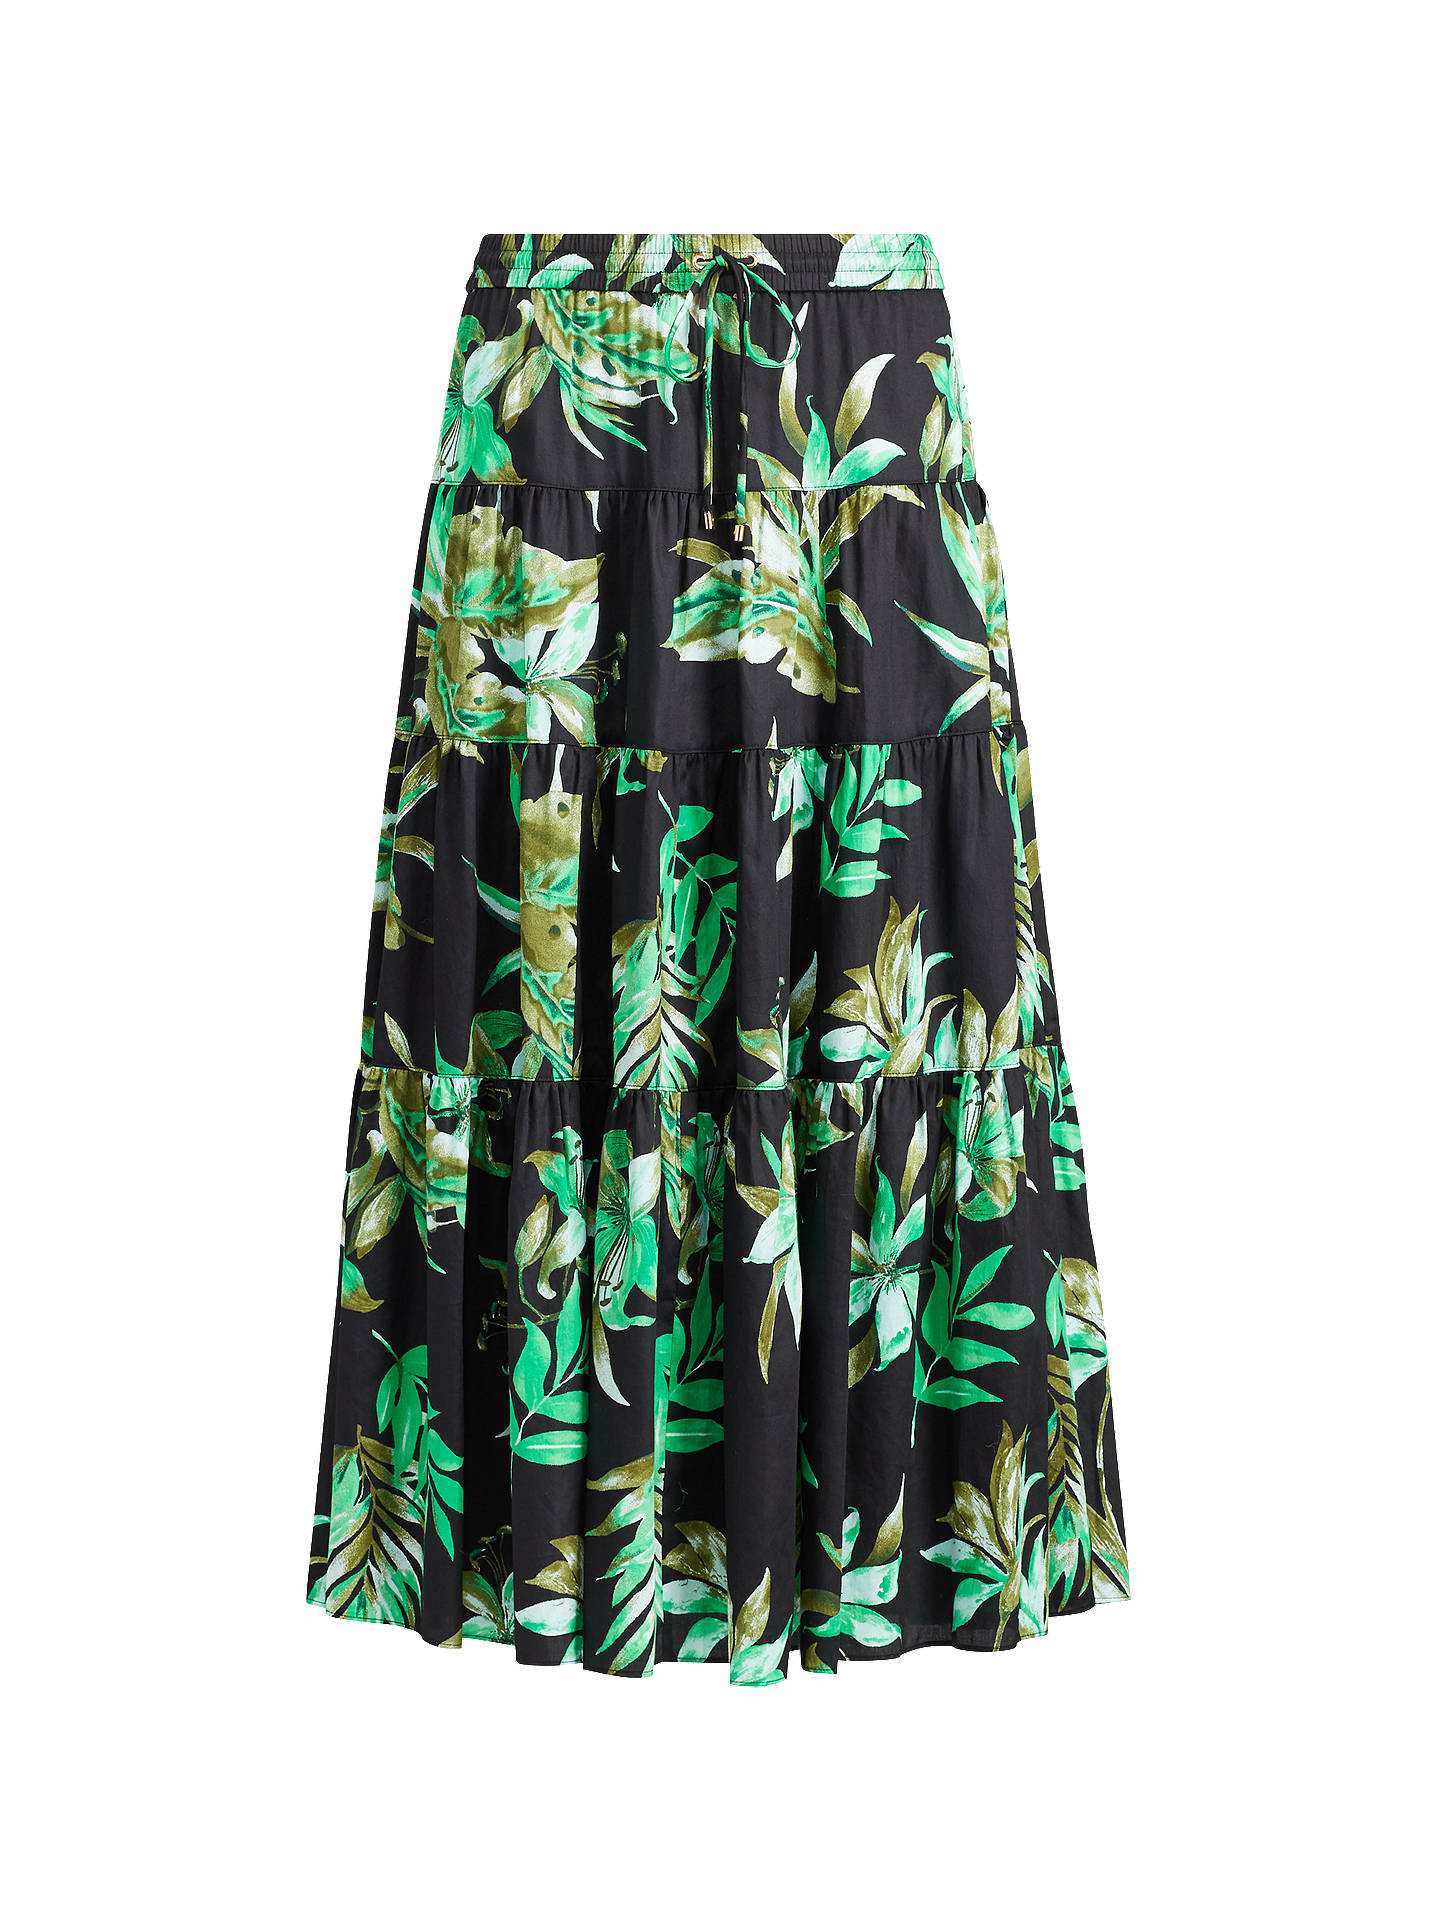 BuyLauren Ralph Lauren Oretha Fern Print Skirt, Black Multi, XS Online at  johnlewis ... 98f4c2b28500